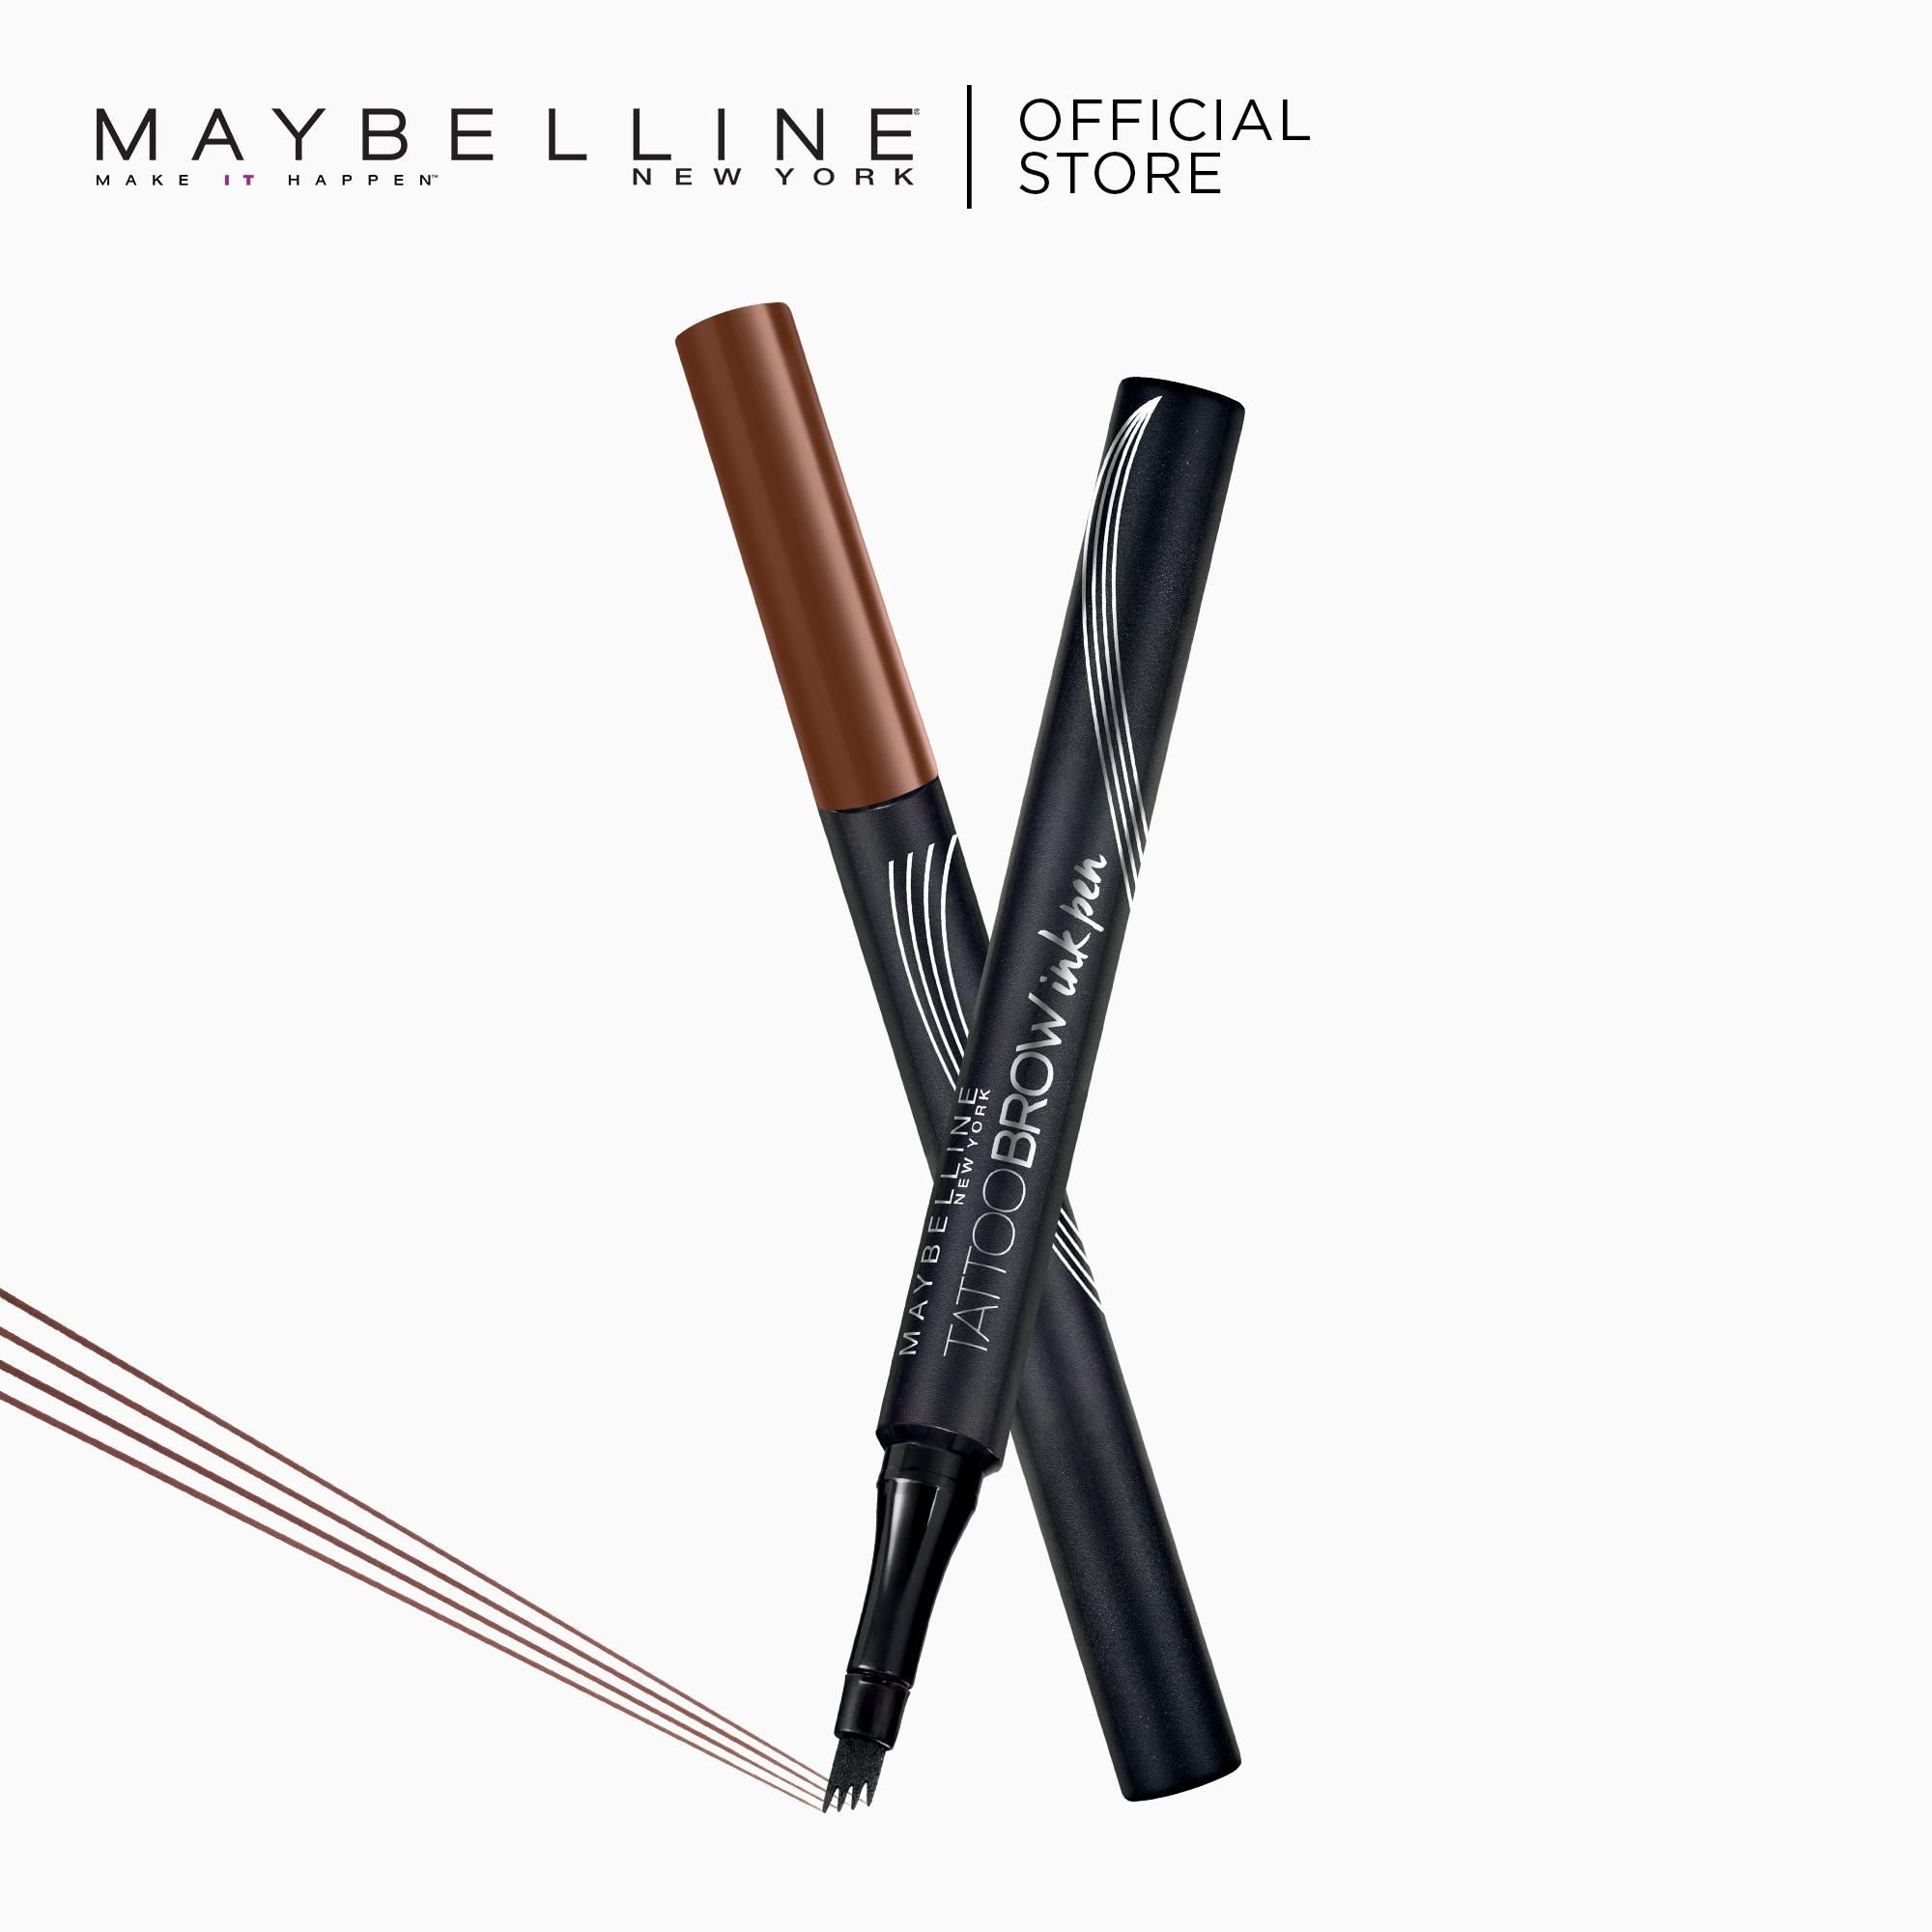 Tattoo Brow Ink Pen - Red Brown [Long-Lasting Brows] by Maybelline Philippines